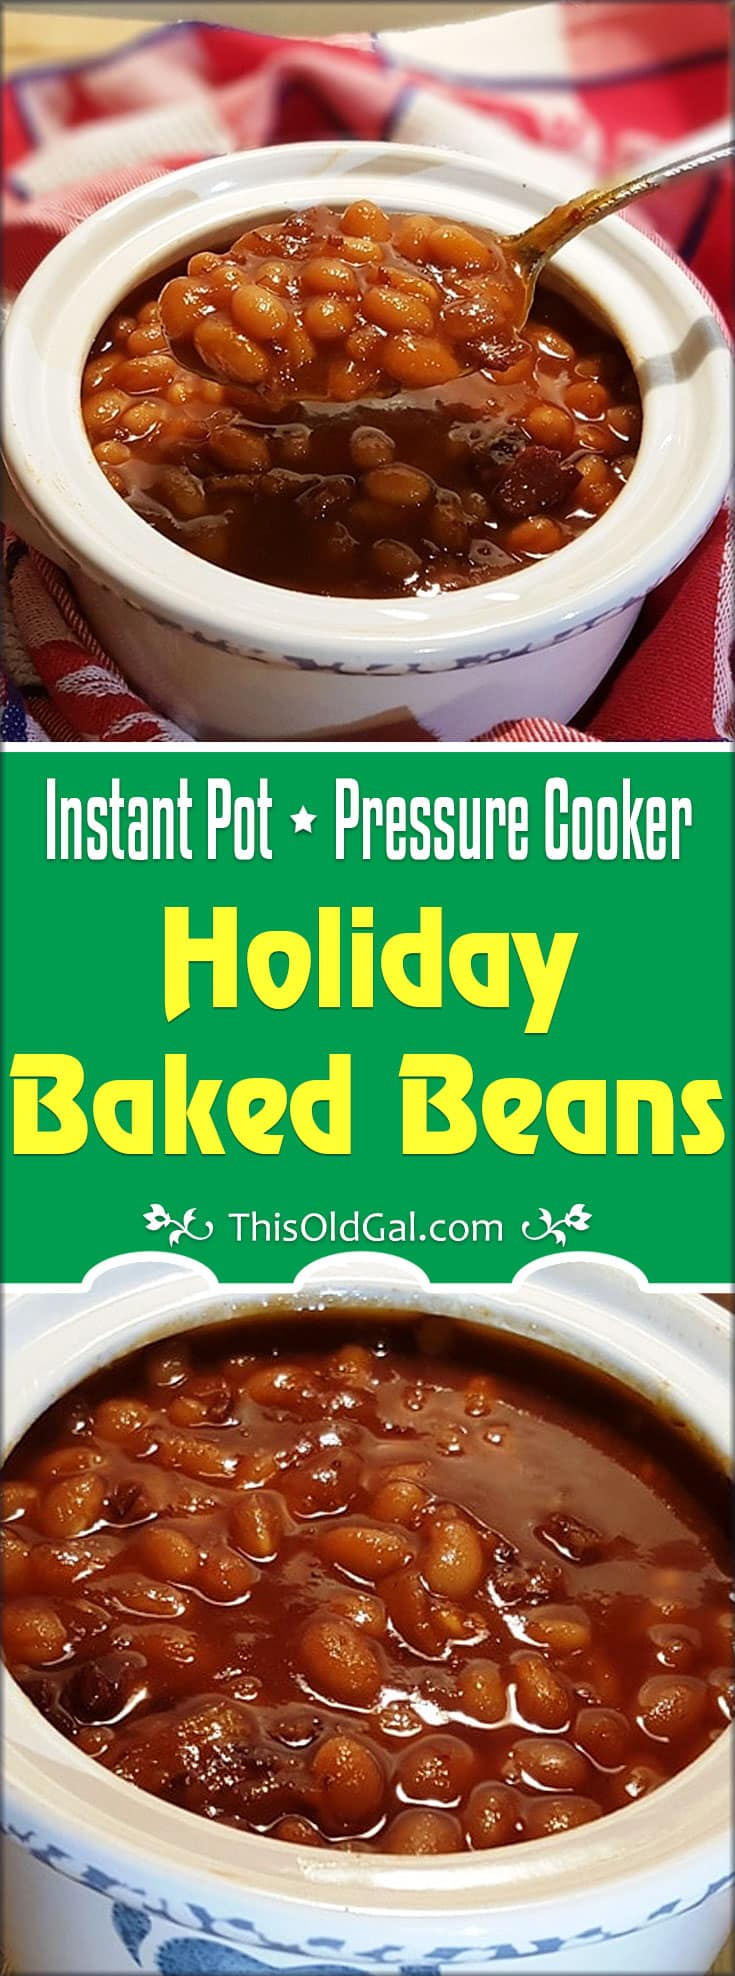 Pressure Cooker Holiday Baked Beans